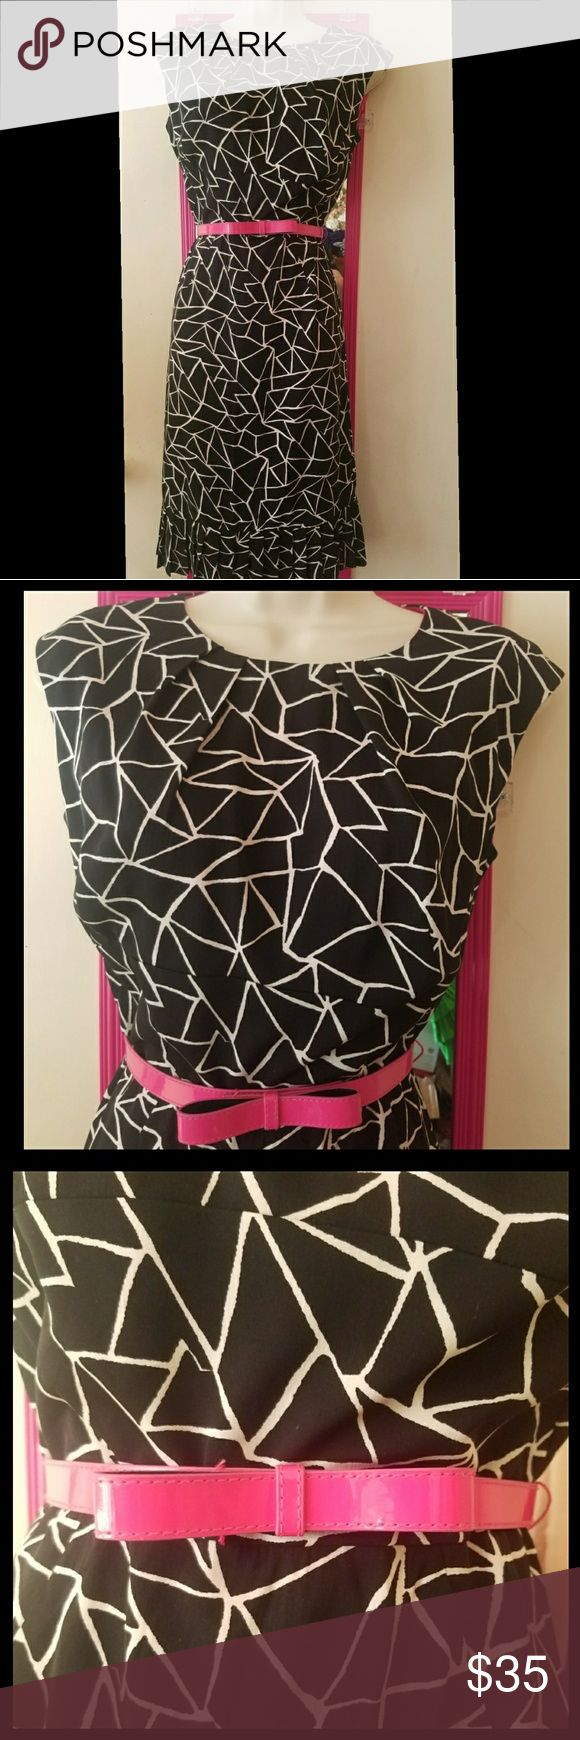 Donna Ricco Stretchy Silk Geometric Dress Beautiful tank dress from Donna Ricco. Black and white geometric design. Sleeveless. Zips in the back. Comes with matching belt, shaped like a bow. Pleated neckline. Pleated ruffles at the bottom. Fully lined.  Shell is 94% silk and 6% spandex. Pink lining in a polyester spandex blend. Both the shell and the lining are stretchy.   Size 4. Bust 36 inches unstretched. Waist 28 inches unstretched. Hips 36 inches unstretched. Length 43 inches. Worn once…